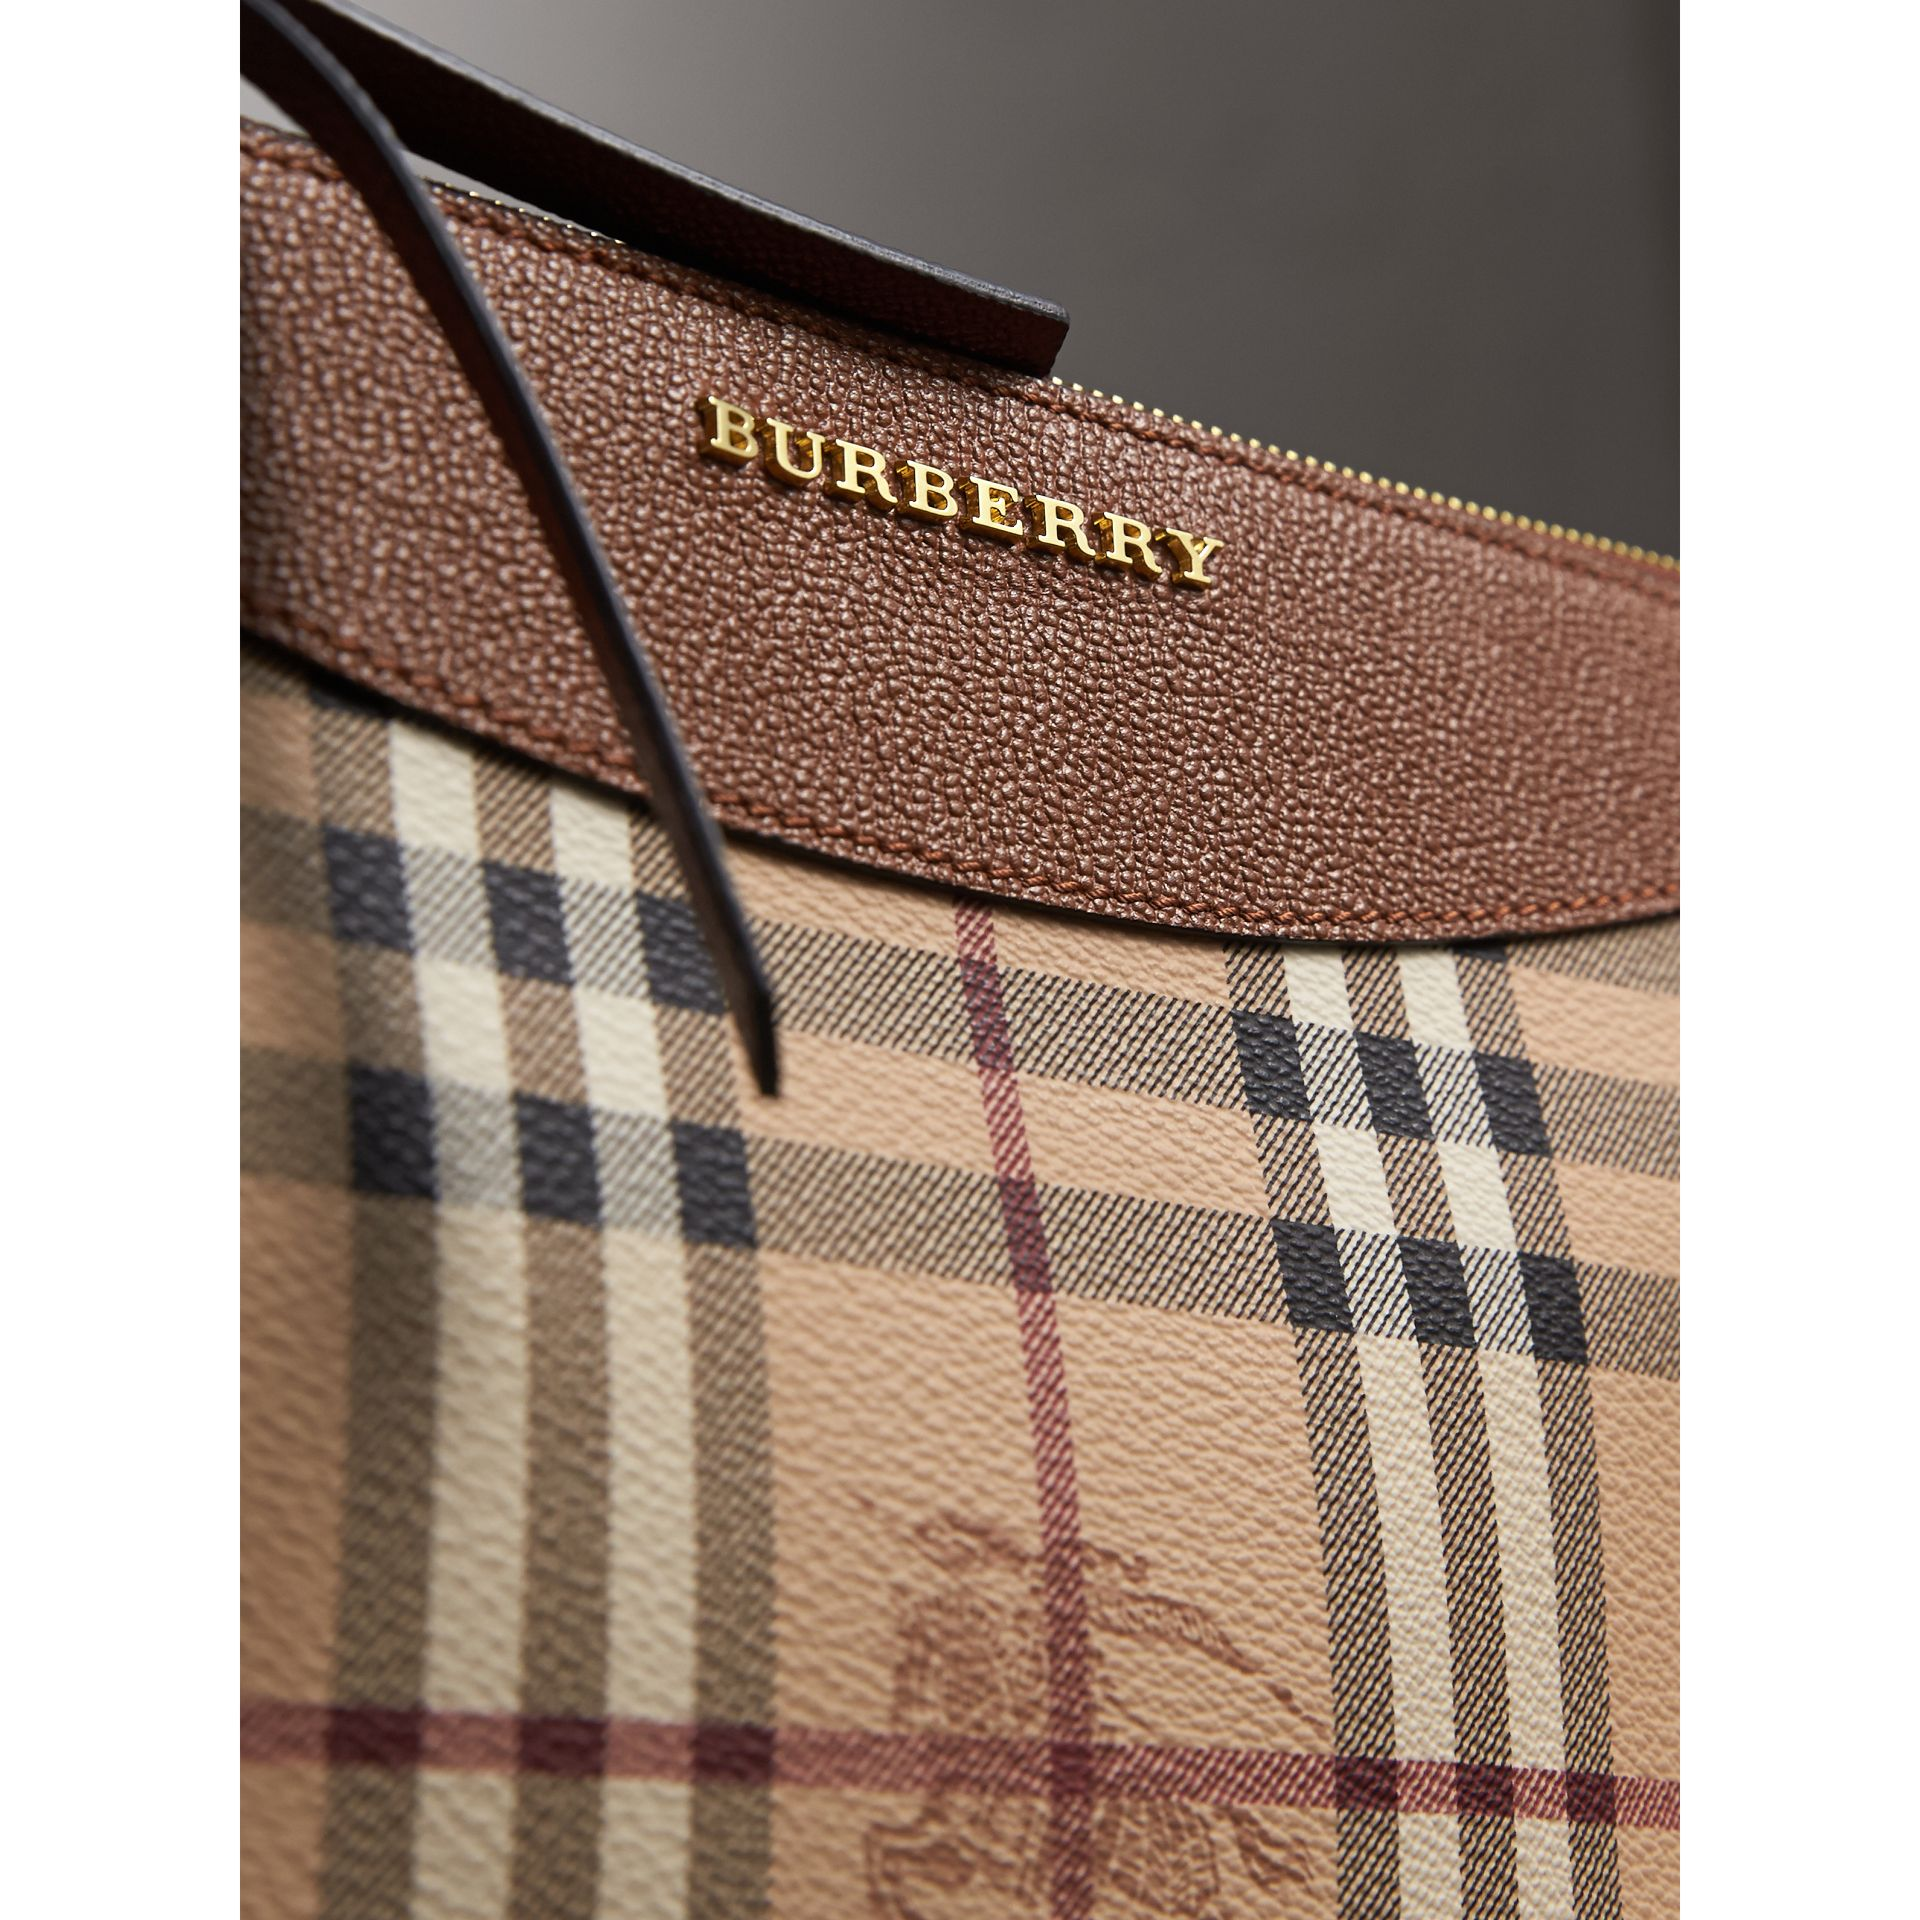 Haymarket Check and Two-tone Leather Clutch Bag in Bright Toffee/ Multicolour - Women | Burberry Singapore - gallery image 2